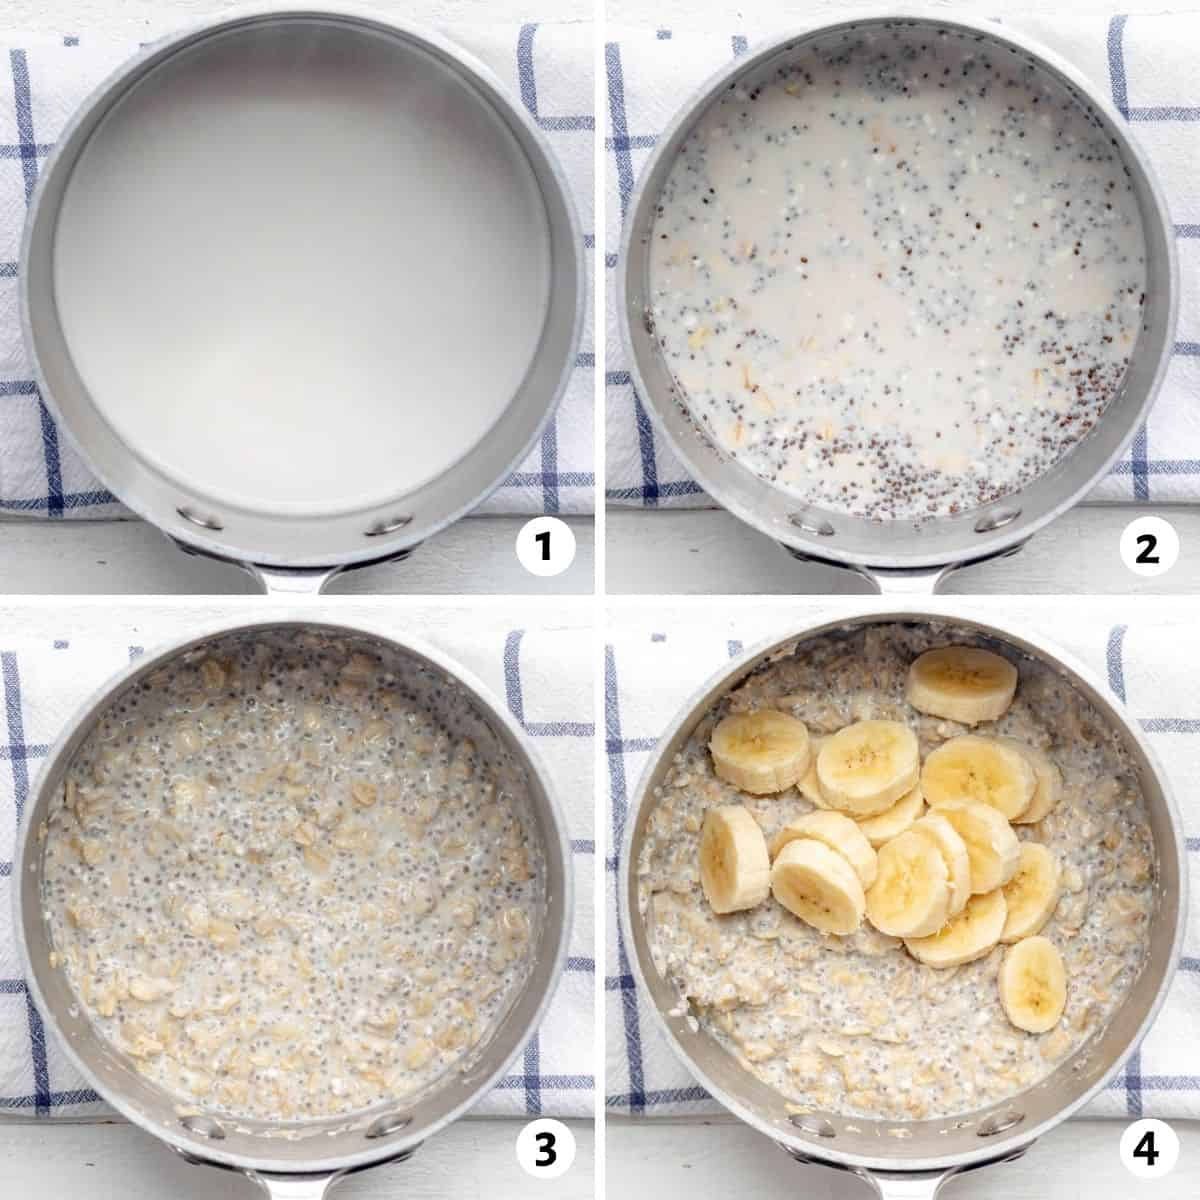 4 image collage to show how to make the protein oatmeal in a small stainless steel pot